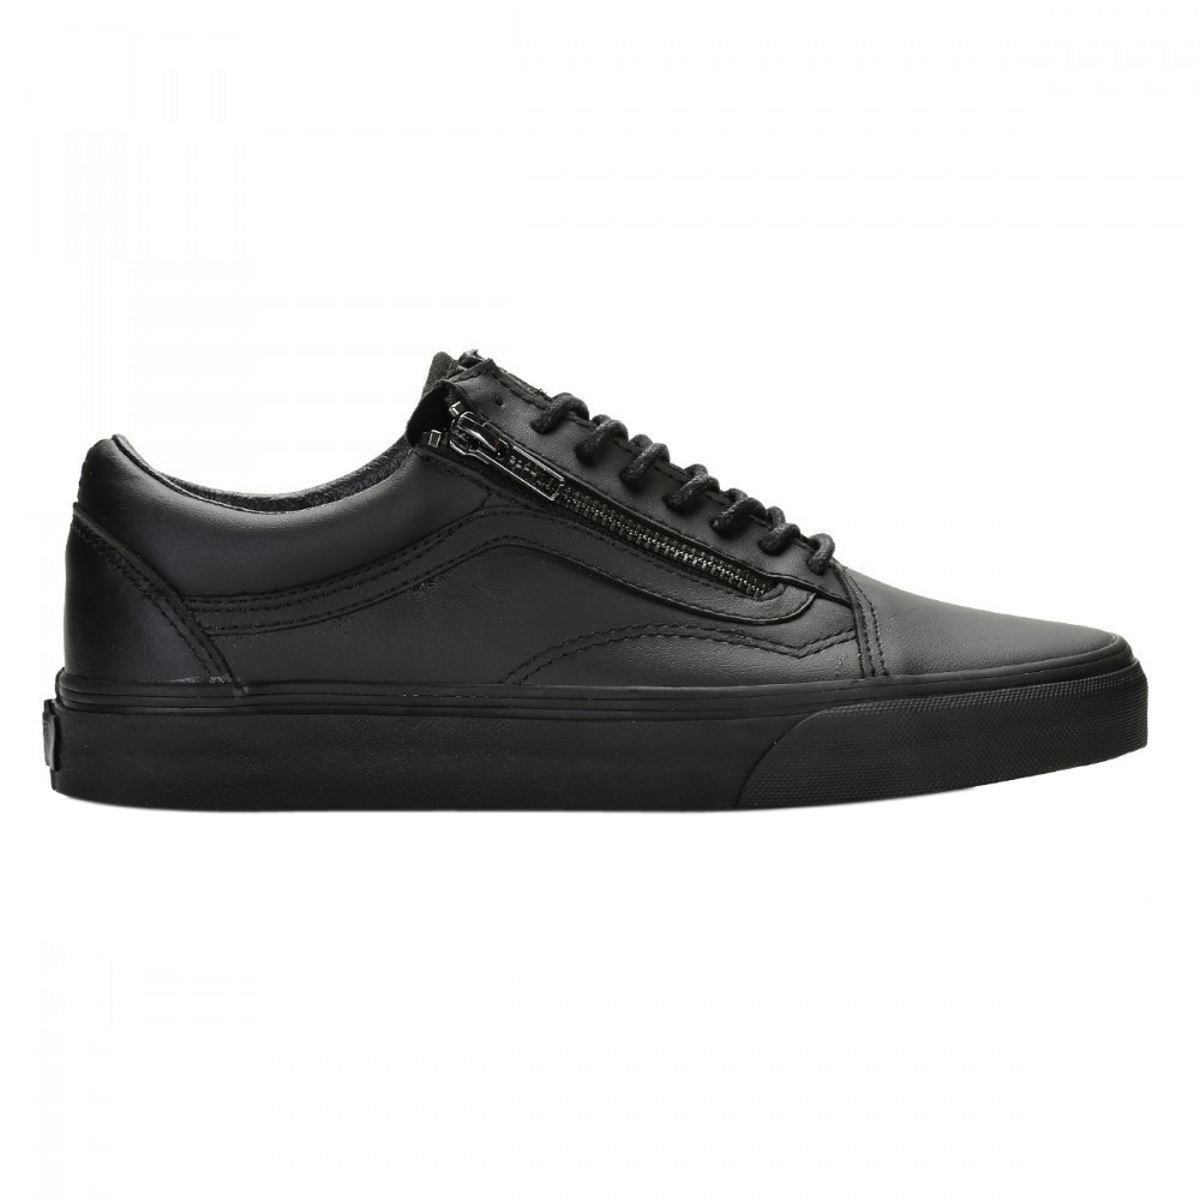 Vans Old Skool Zip Womens skateboarding-shoes c_VN-018GJTL (6, Black)